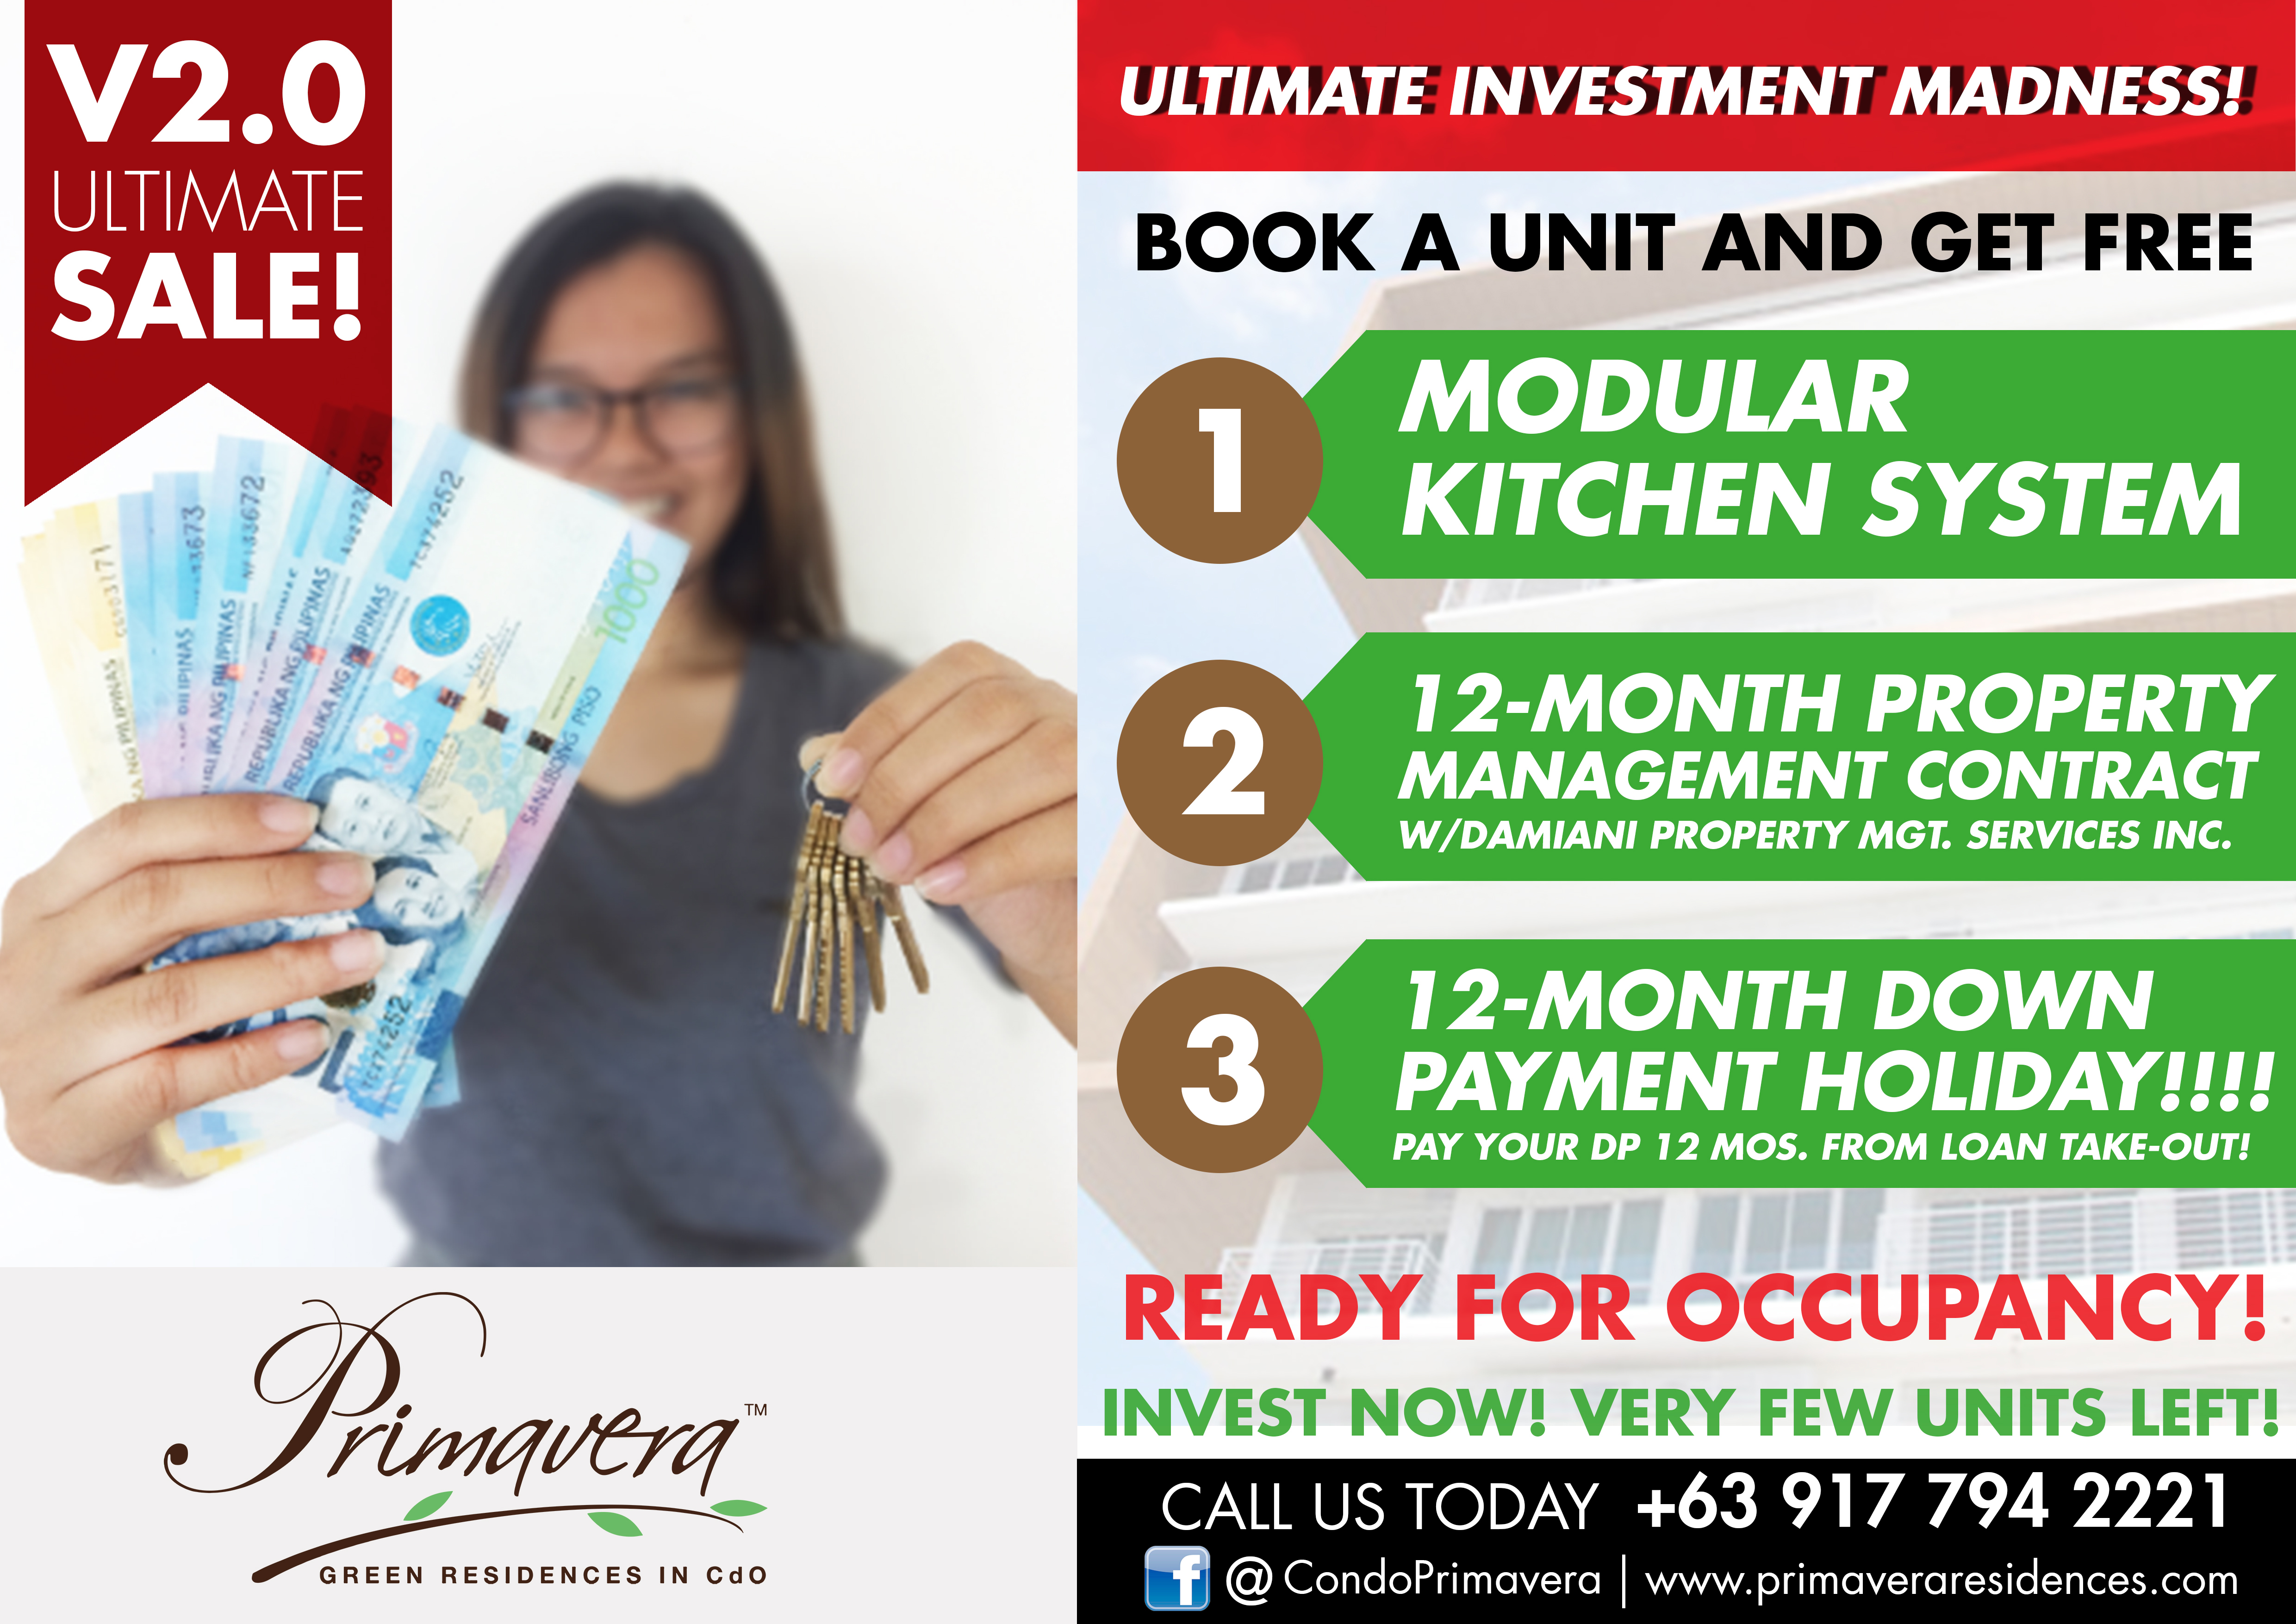 Primavera Residences Investment Sale is Back!